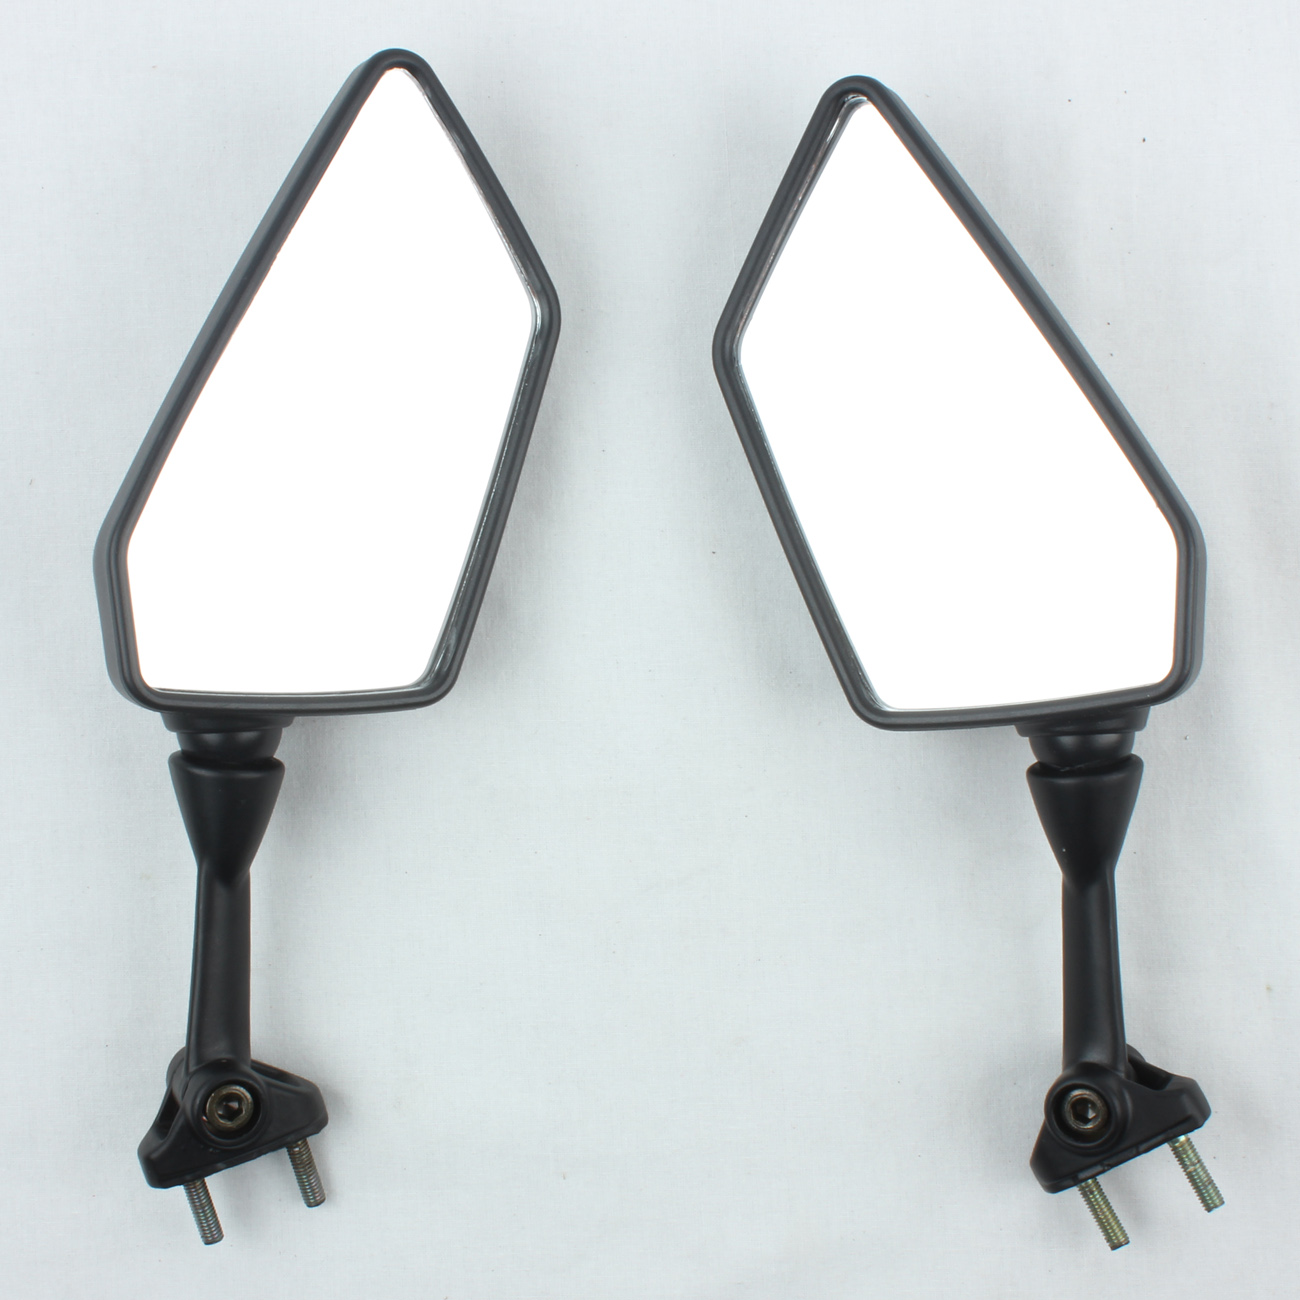 Mirrors for Kawasaki 250R EX250 2008-2013 Black